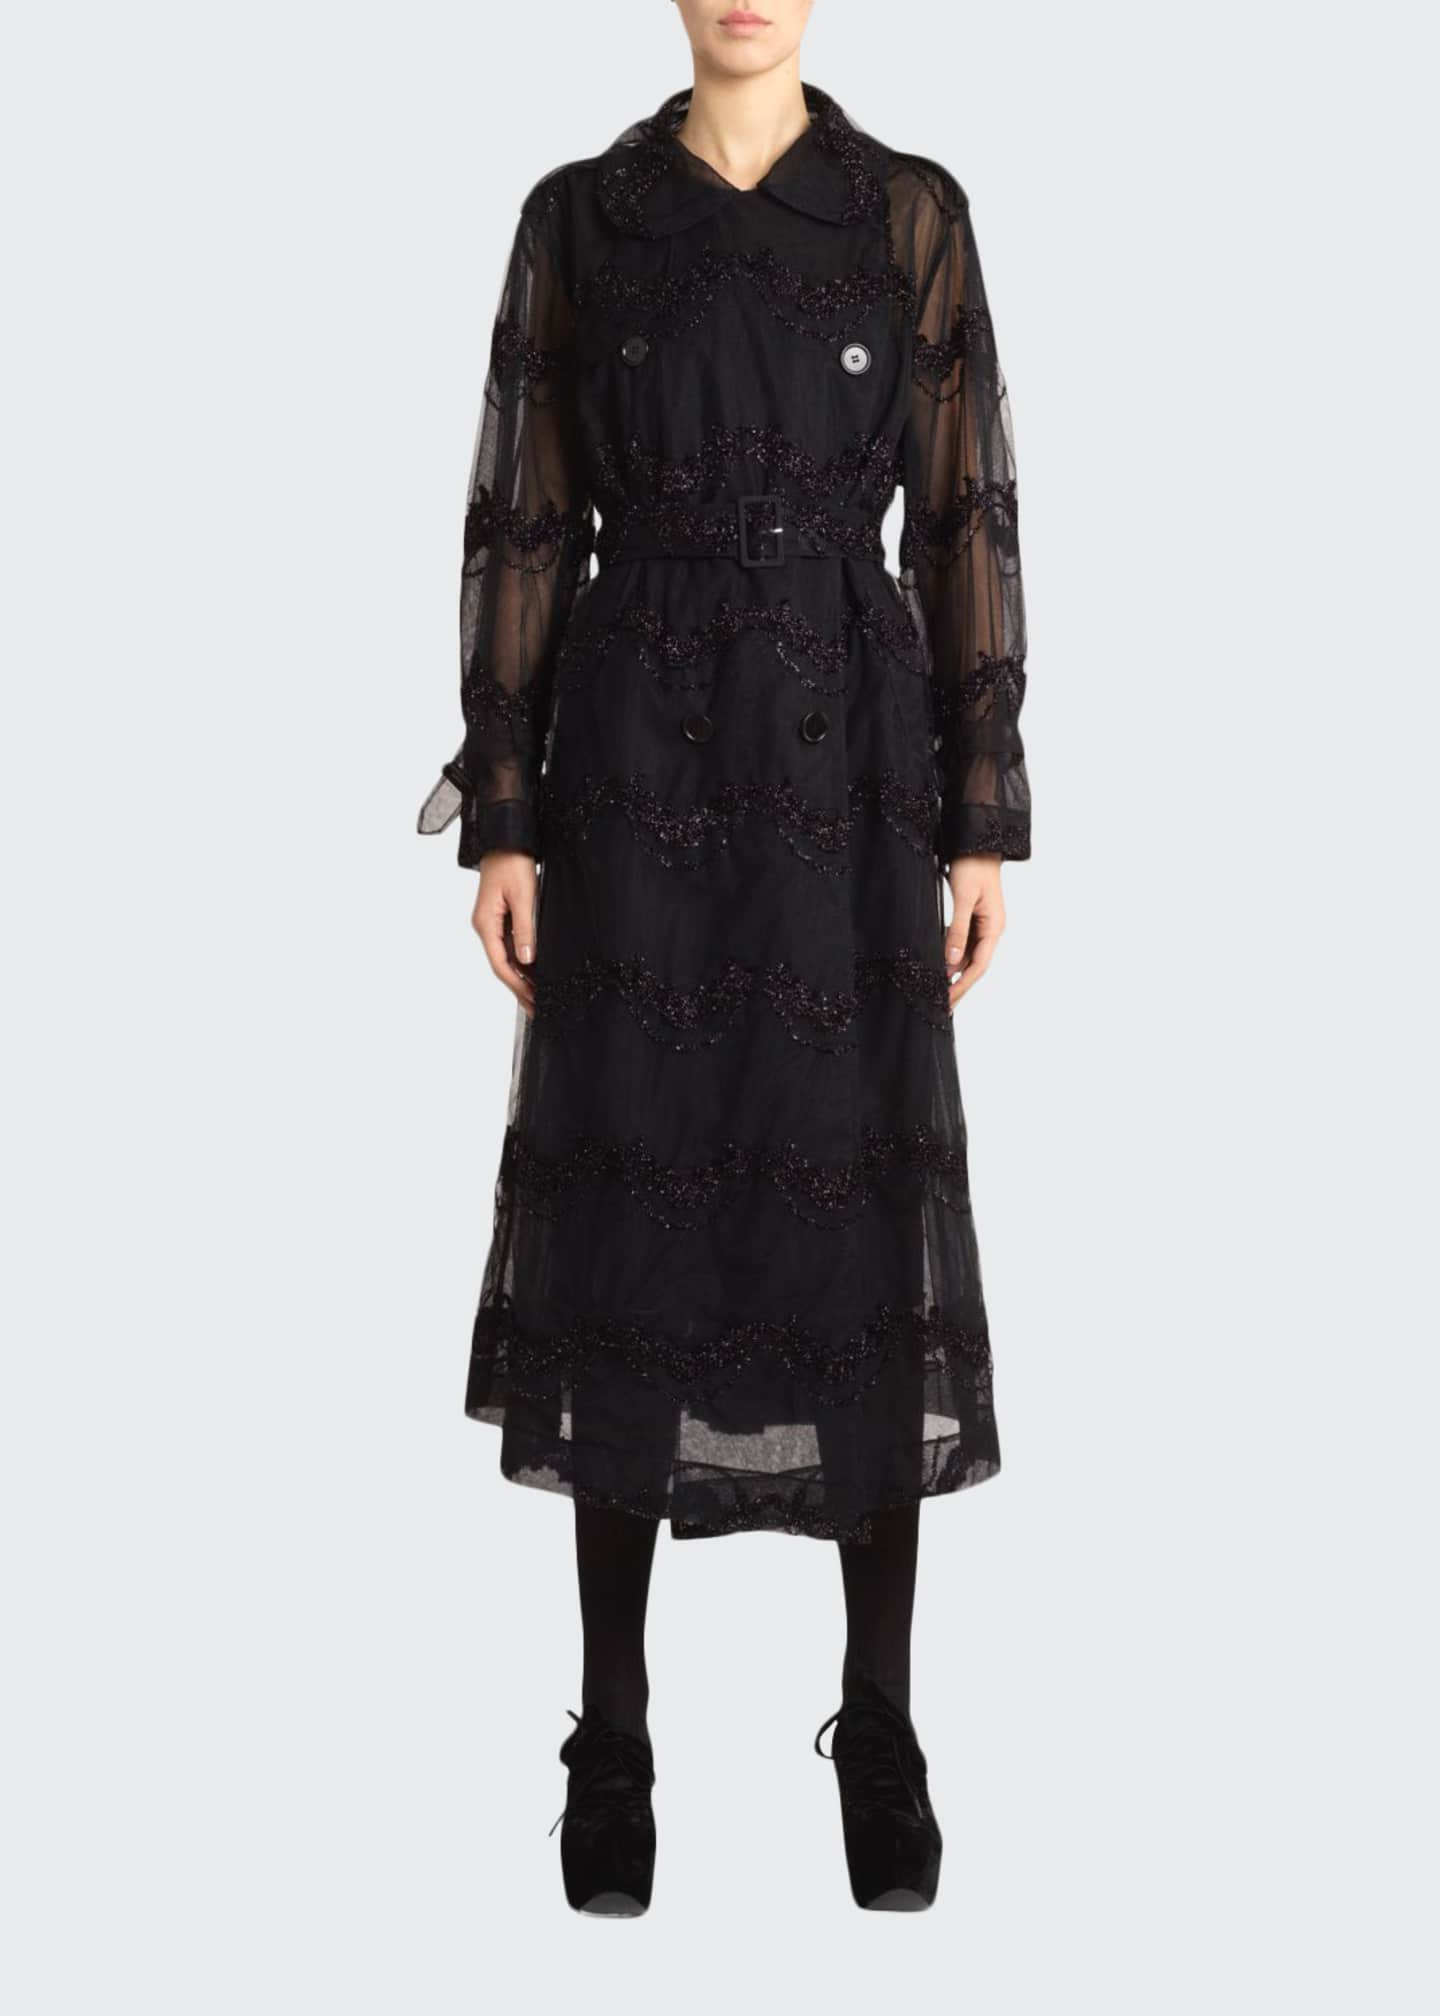 Simone Rocha Beaded-Tulle Double-Breasted Trench Coat